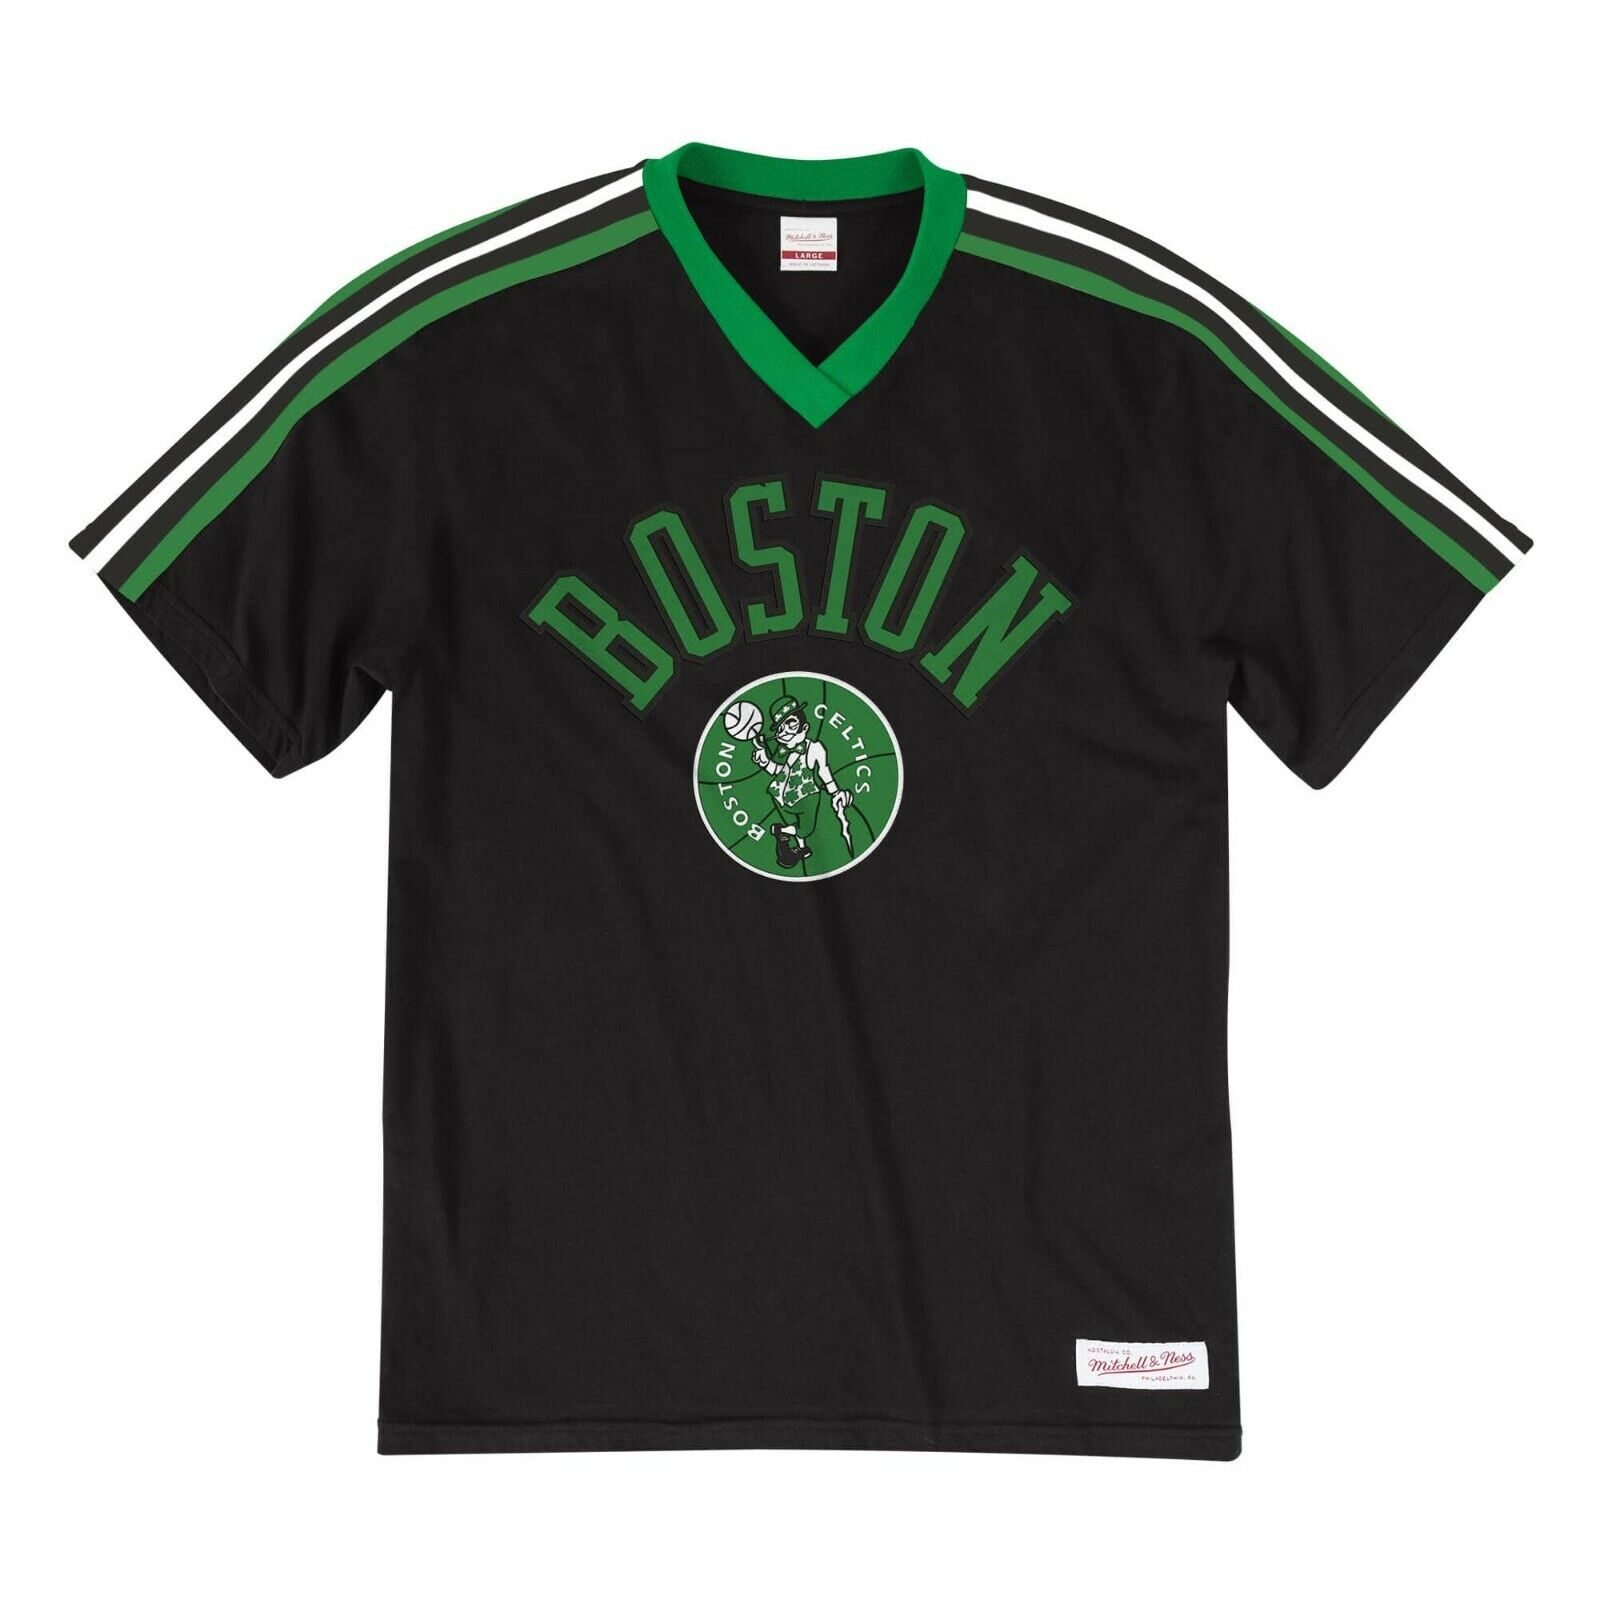 info for 92c89 373c3 New Mitchell   Ness Boston Celtics Black Overtime Win Vneck Tshirt NBA